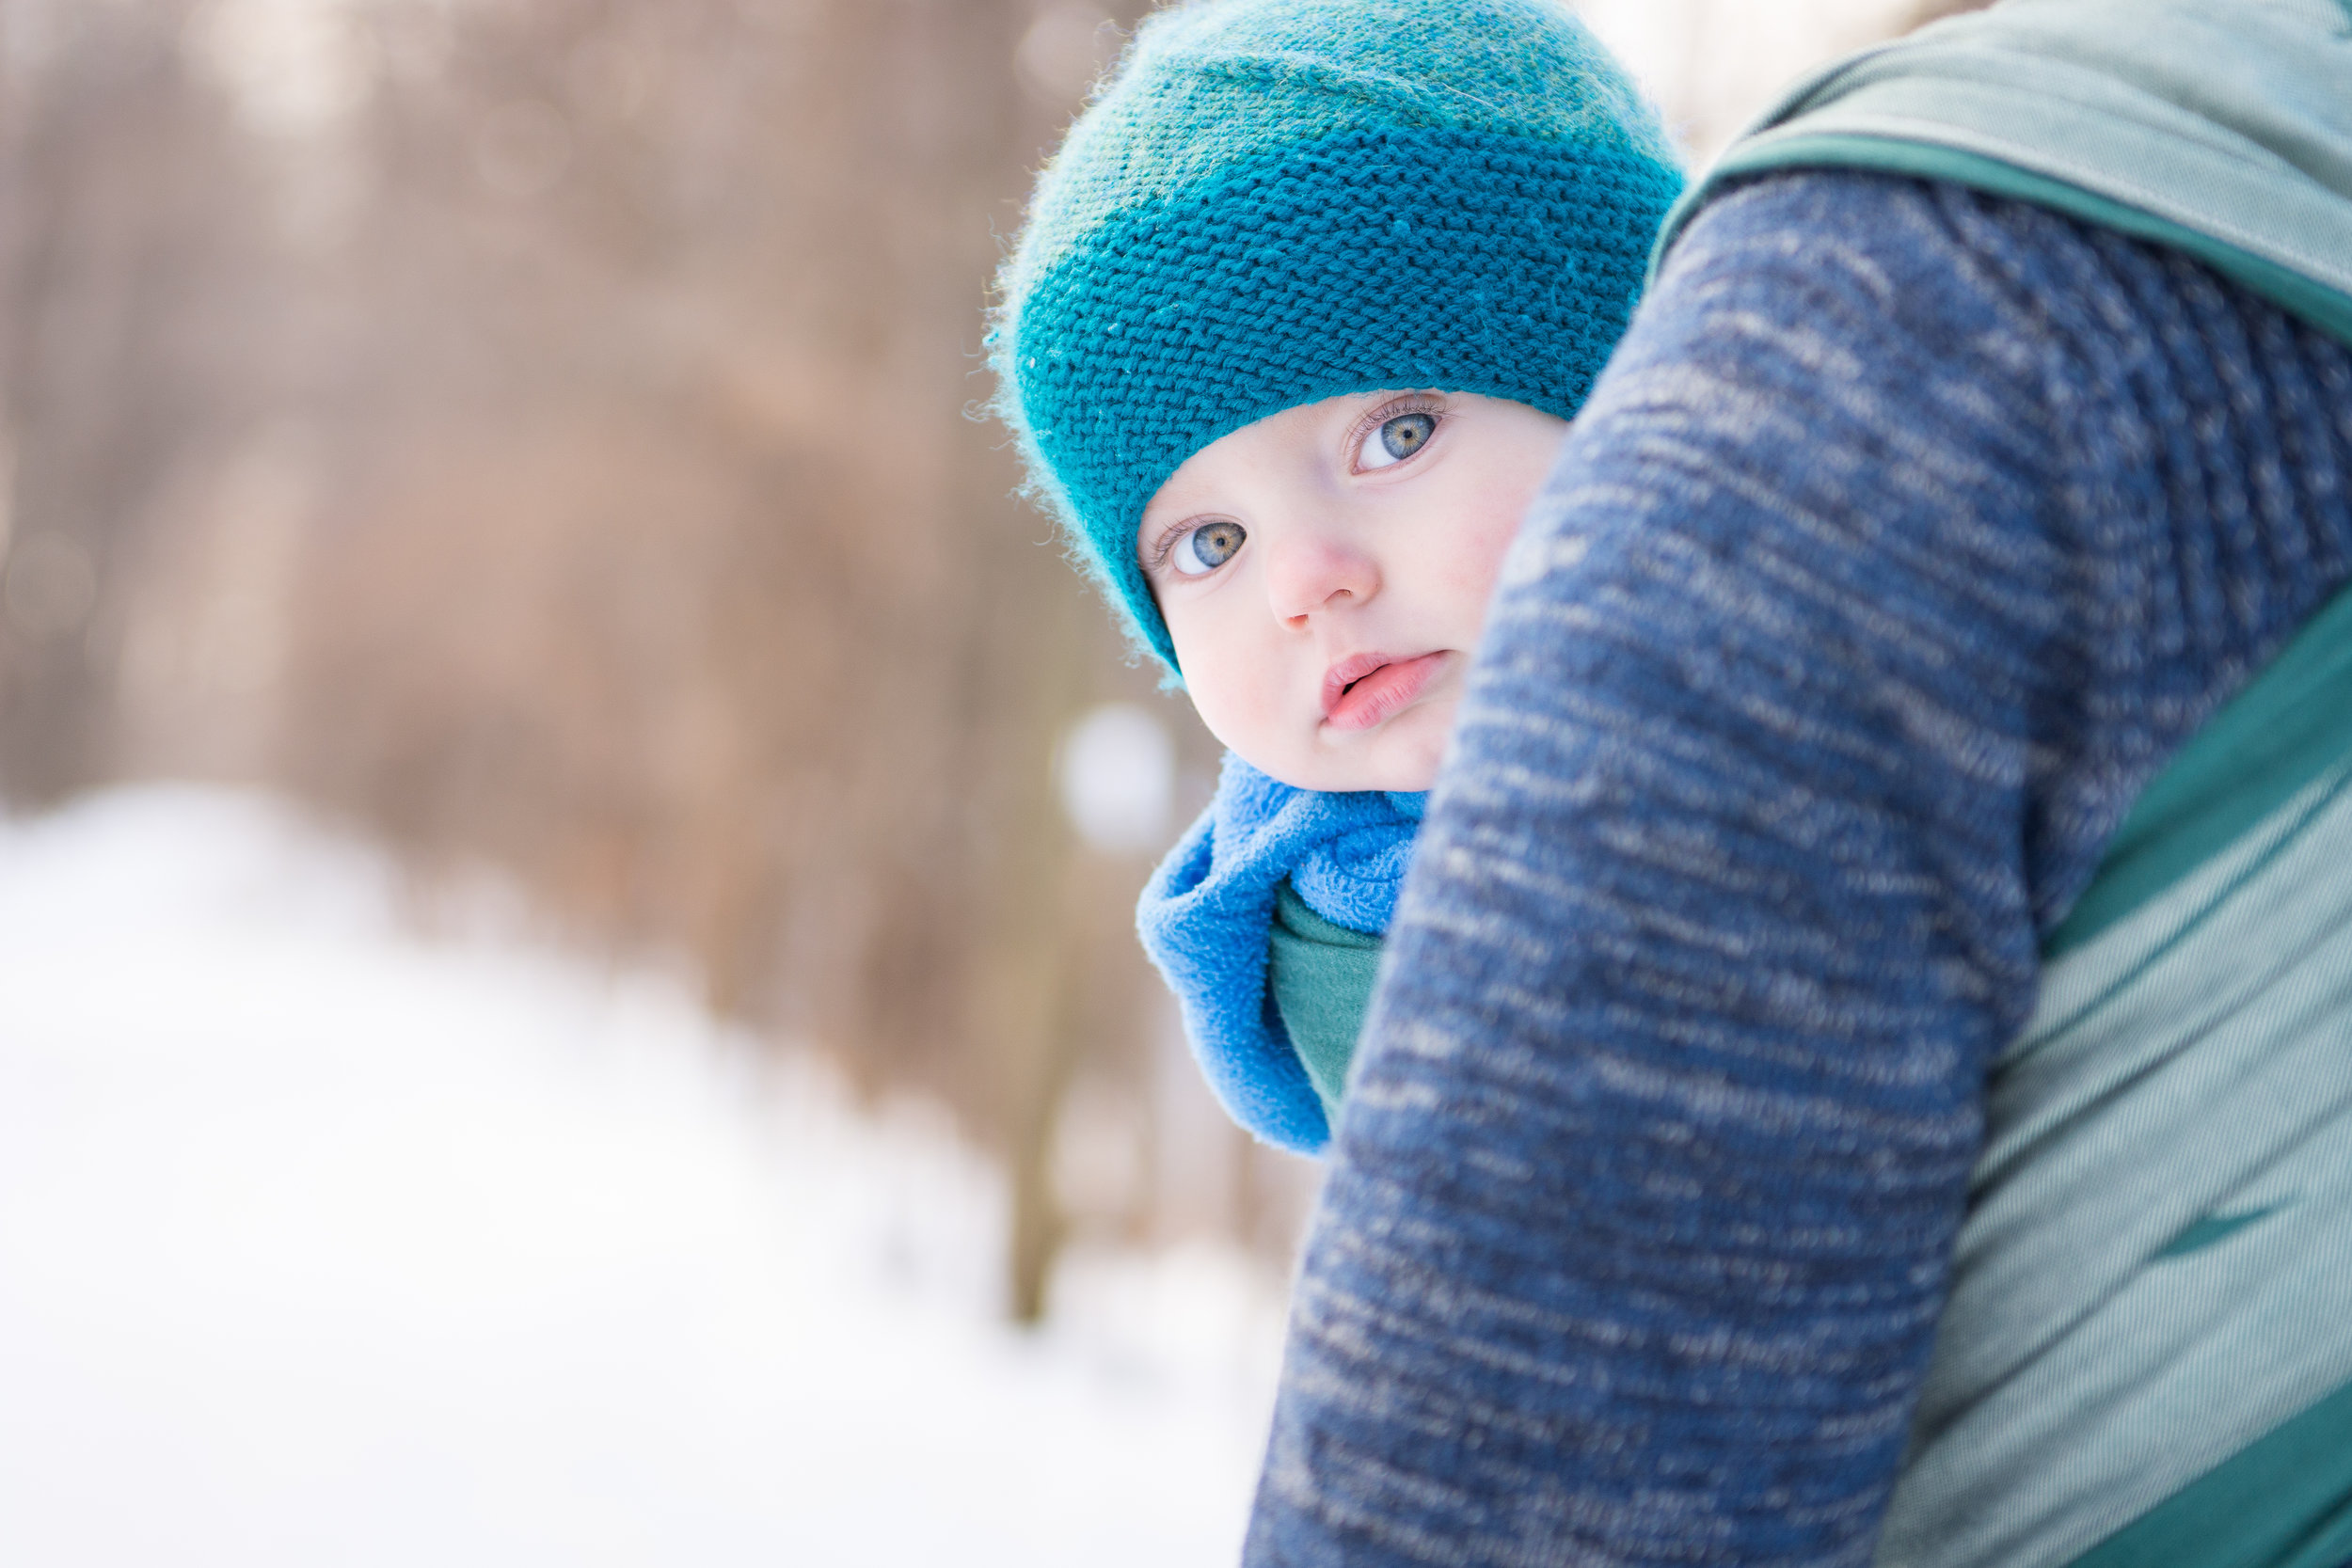 Little baby blues peeking out while babywearing with Dad in Ottawa Park.